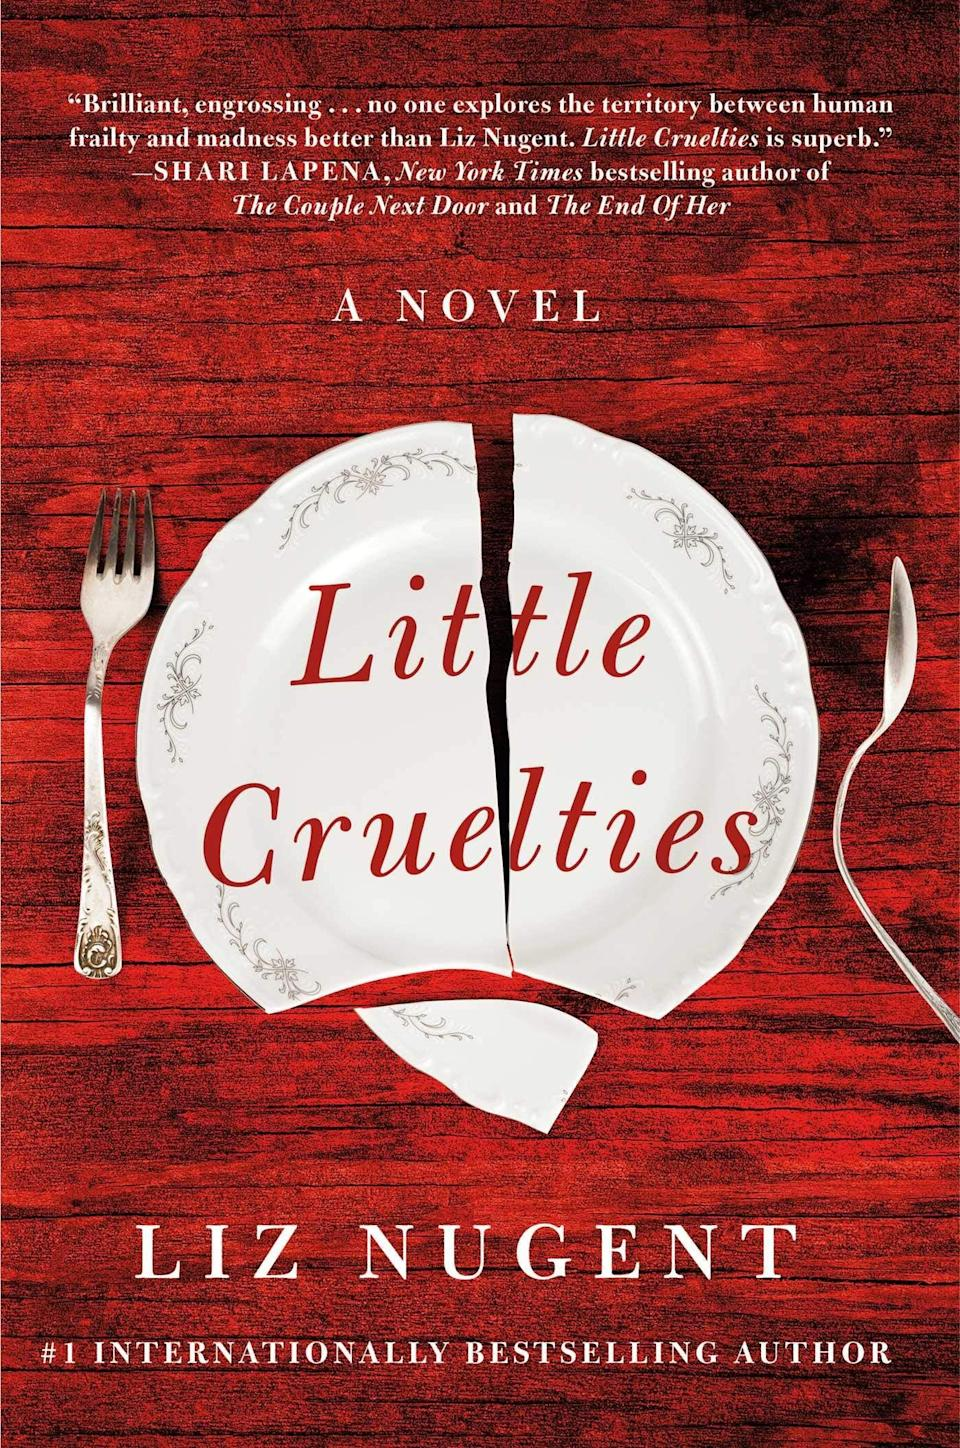 <p>A twisted family with a history of playing dangerous games is at the center of <span><strong>Little Cruelties</strong></span> by Liz Nugent. The Drumm brothers were taught by their mother to compete for her attention as children, and their cruel games have continued into adulthood. Now the brothers are on a collision course that will leave one of them dead and all of their lives shattered. </p> <p><em>Out Nov. 10</em></p>